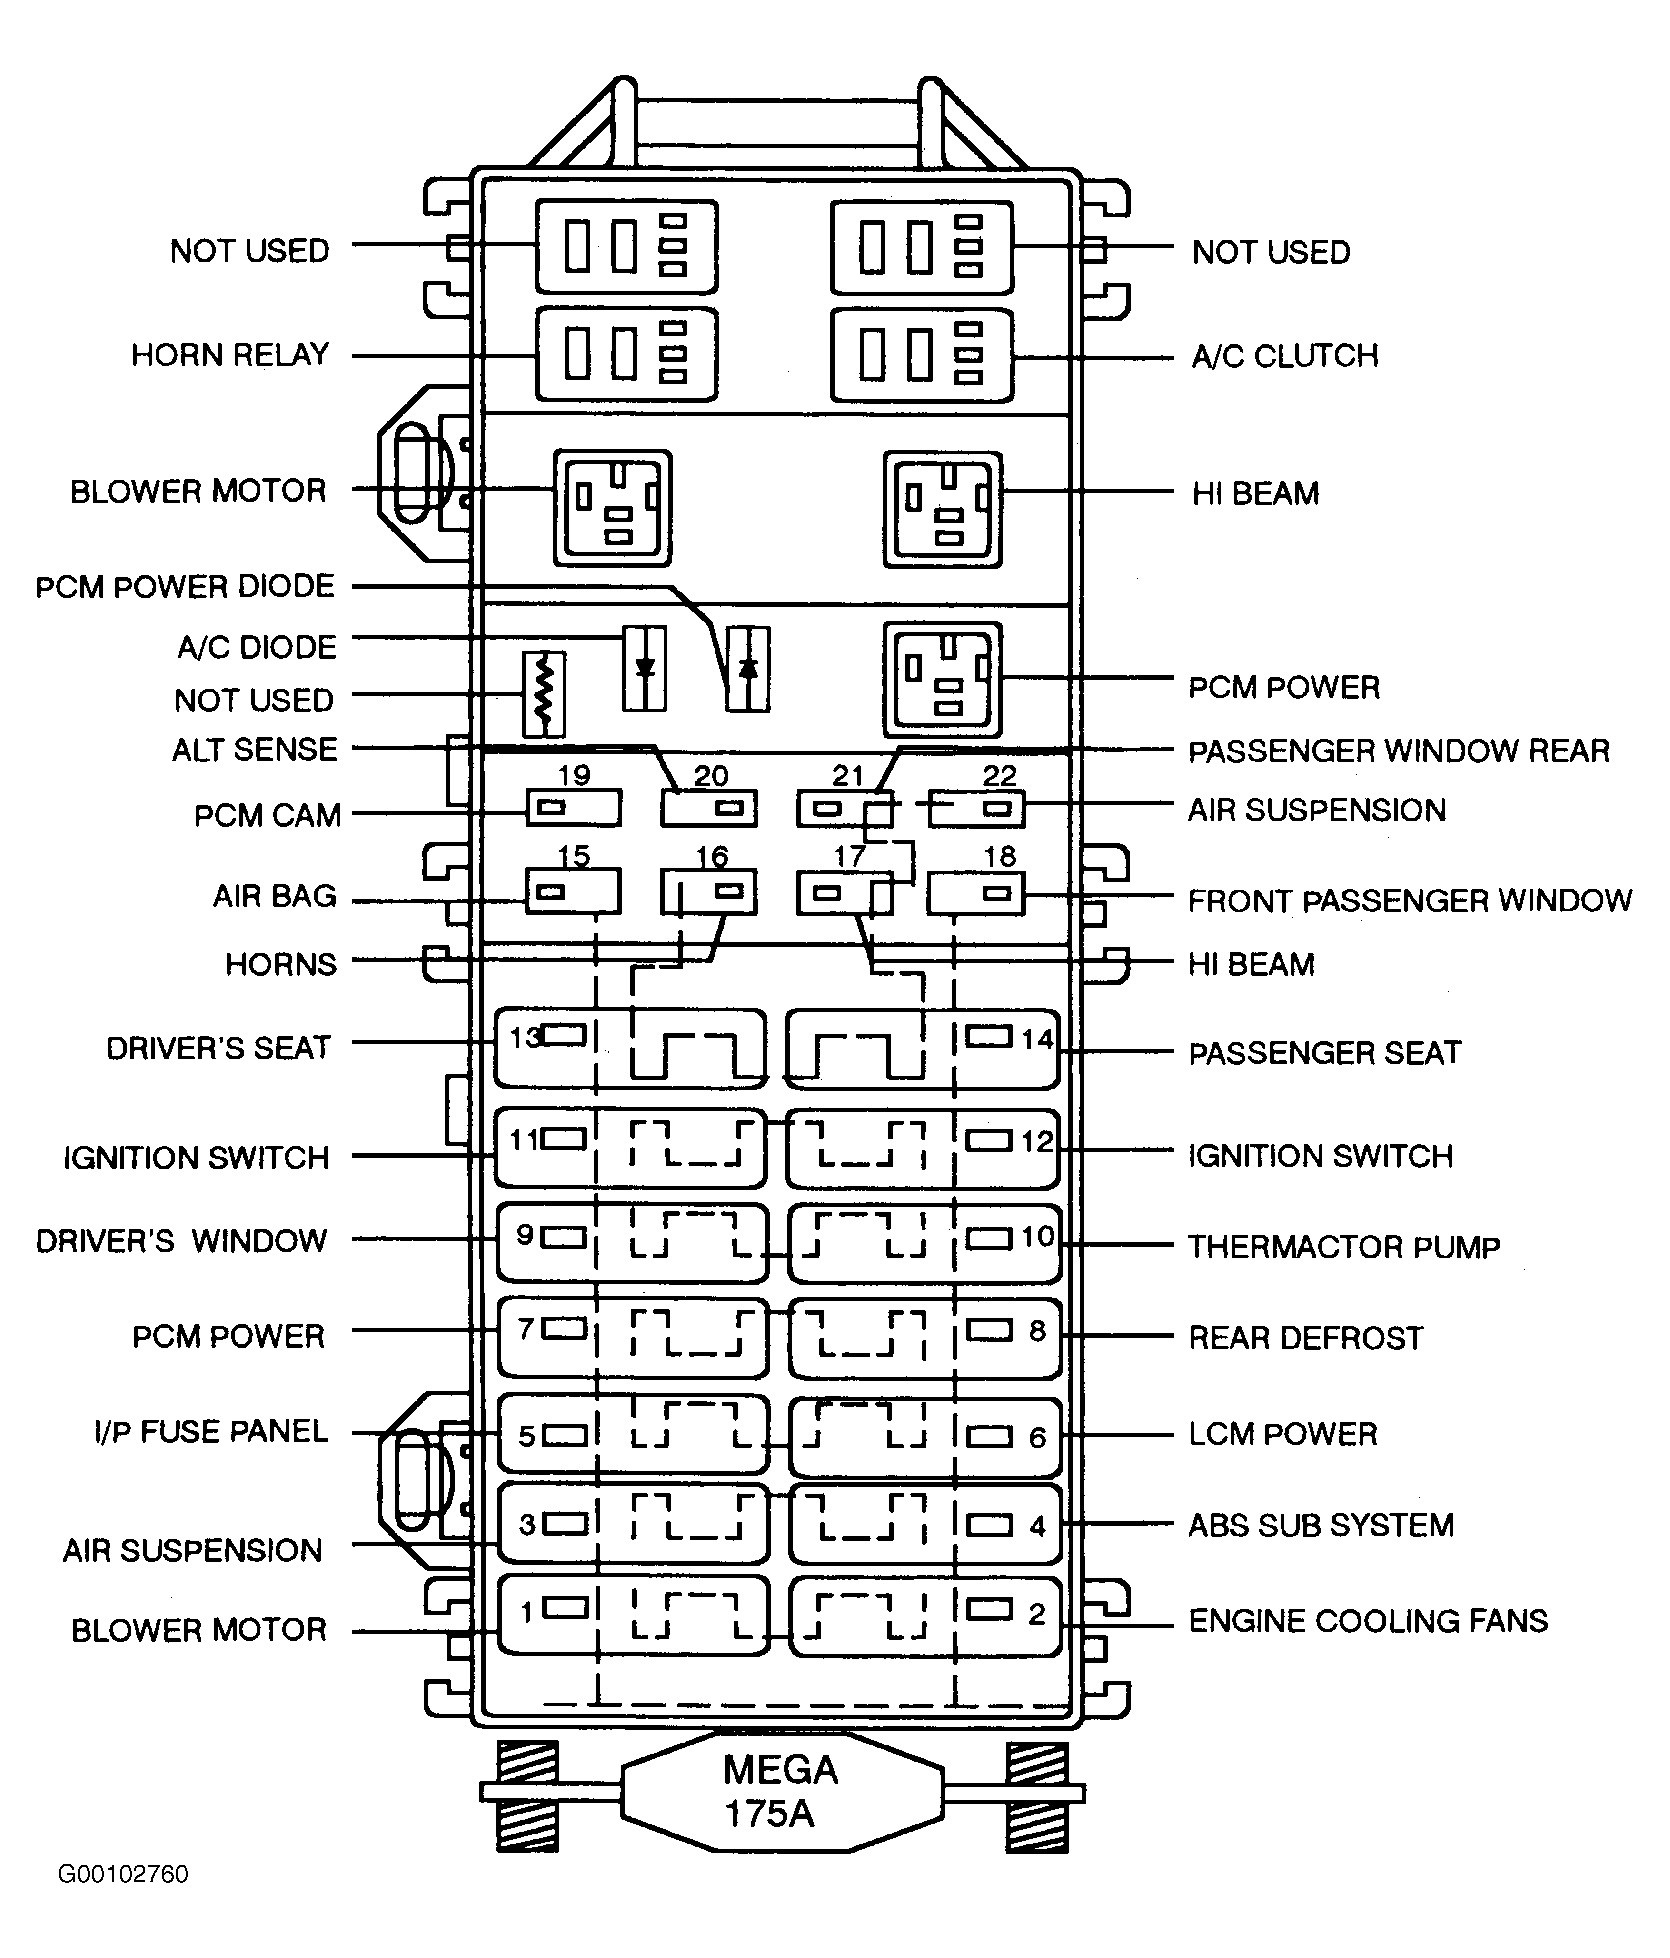 medium resolution of for a 2000 lincoln town car fuse diagram interior explained wiring